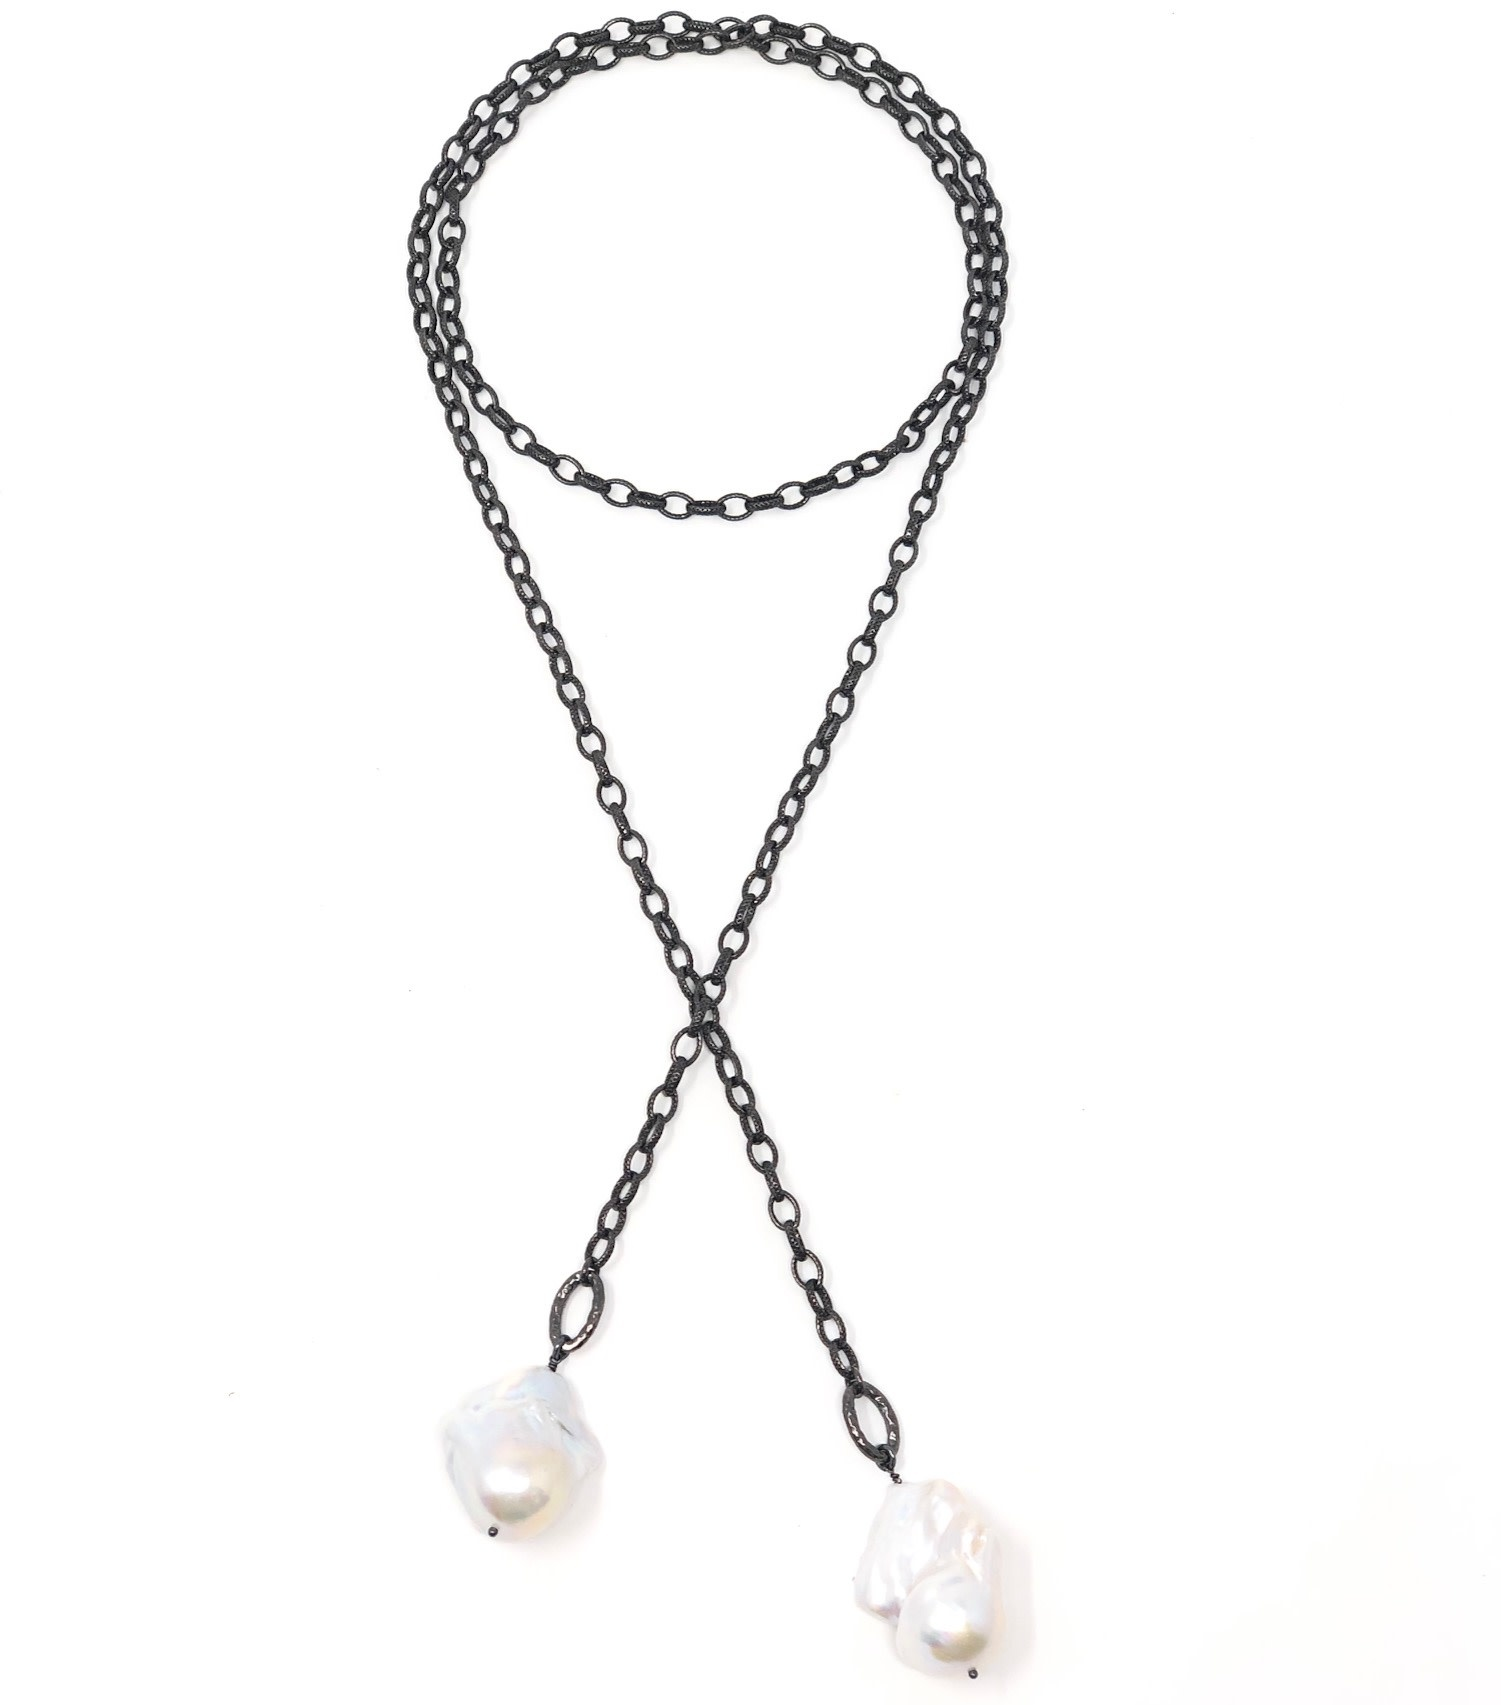 Textured Oxidized Baroque Lariat